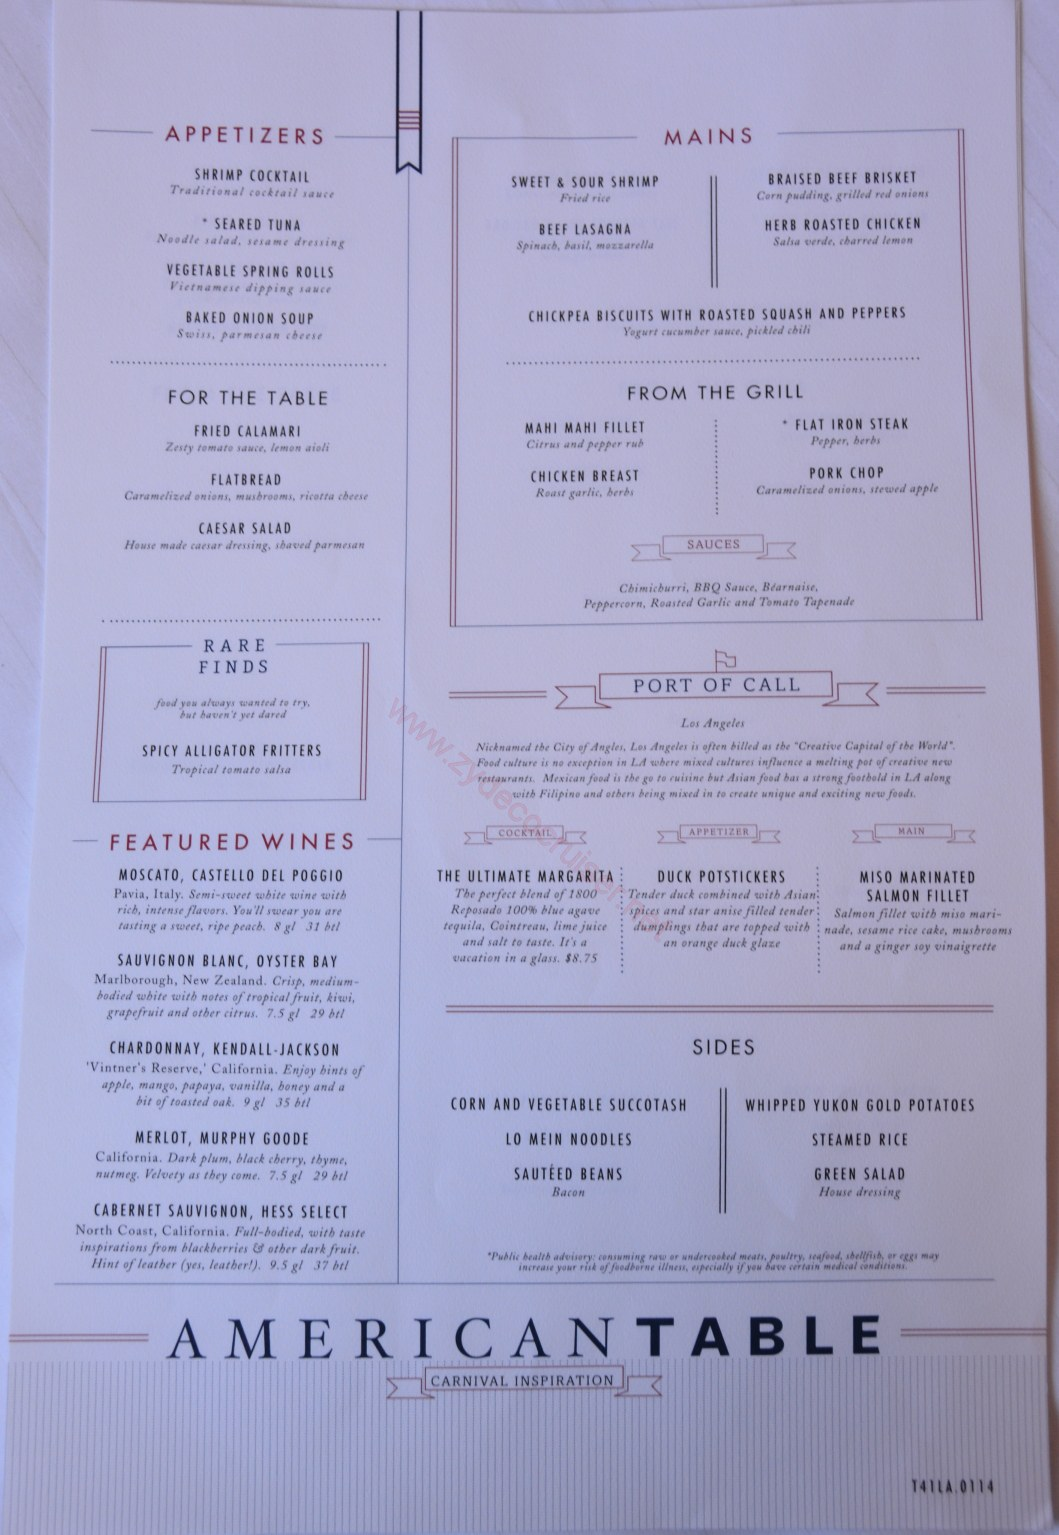 Carnival Inspiration 3 Day American Table Menus Day 1